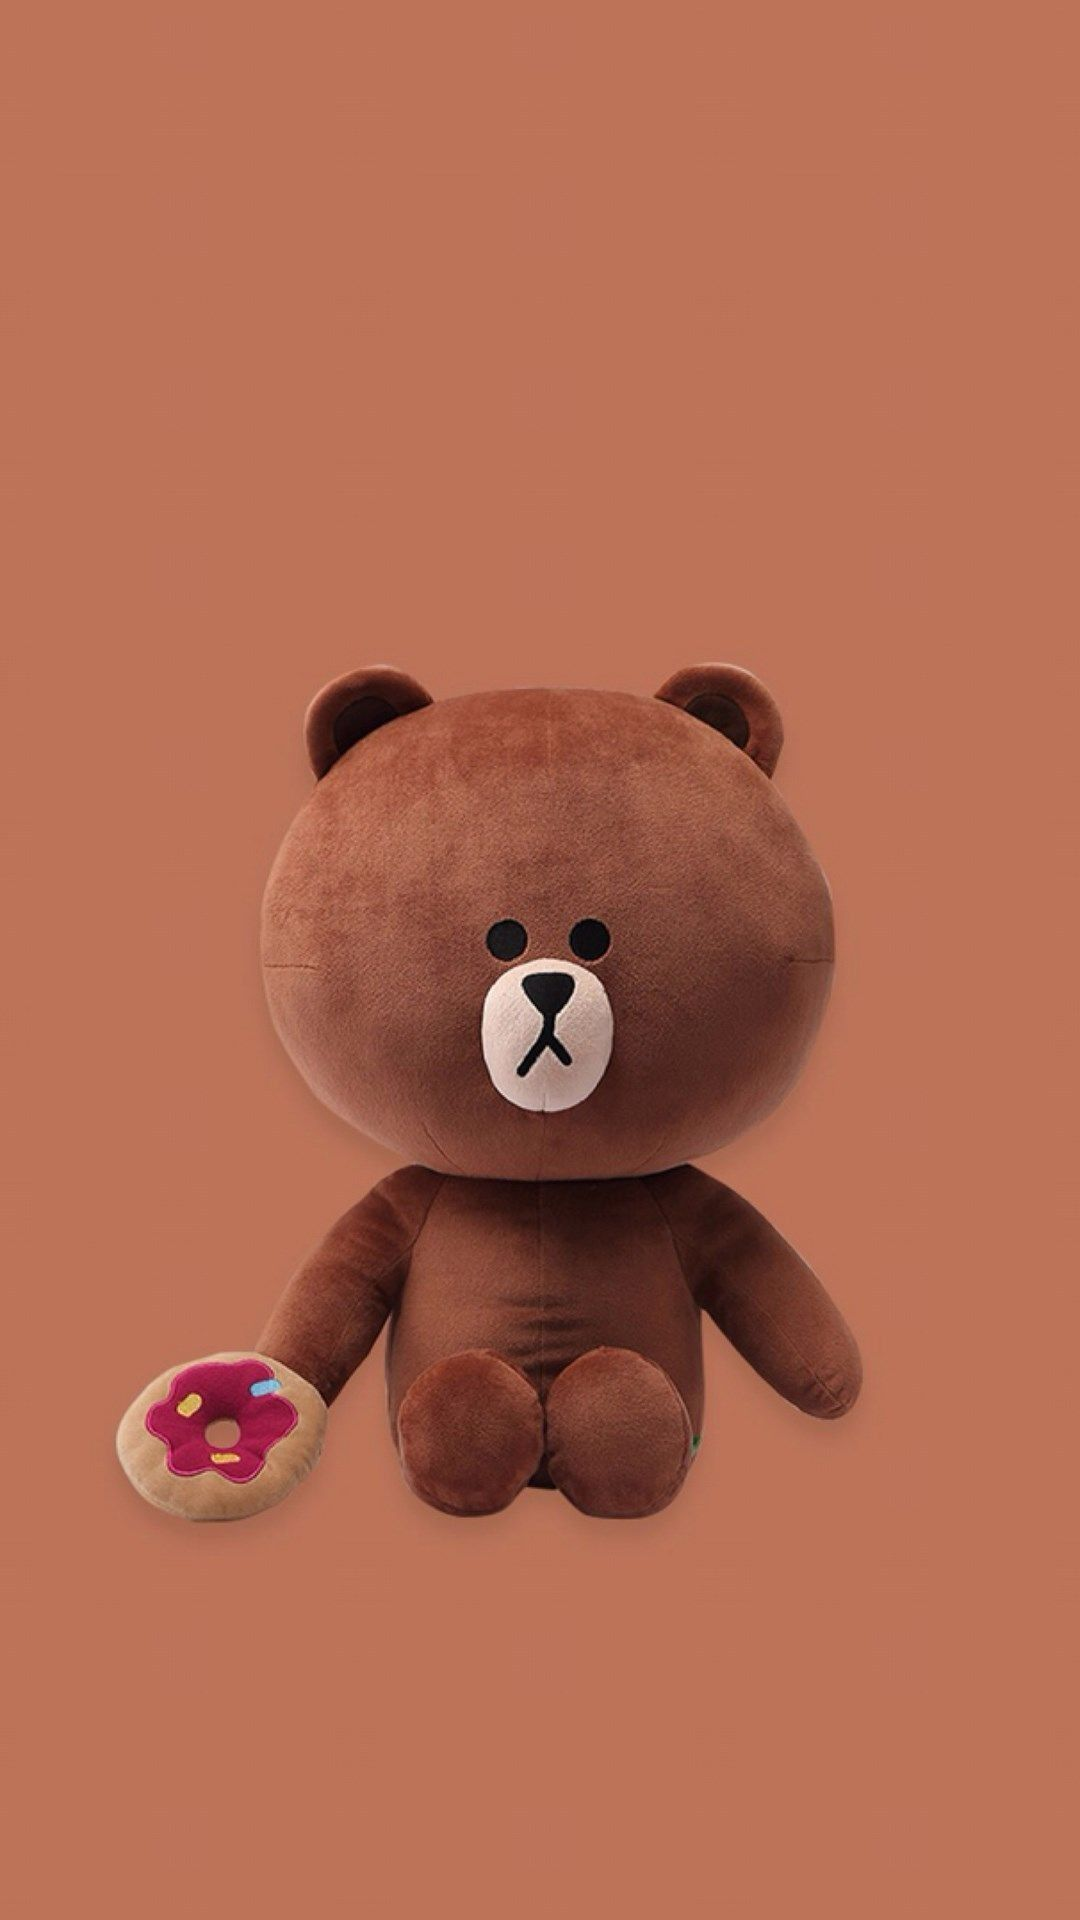 Bear Android Iphone Desktop Hd Backgrounds Wallpapers 1080p 4k 126166 Hdwallpapers Androidw Teddy Bear Wallpaper Iphone Cartoon Cartoon Wallpaper